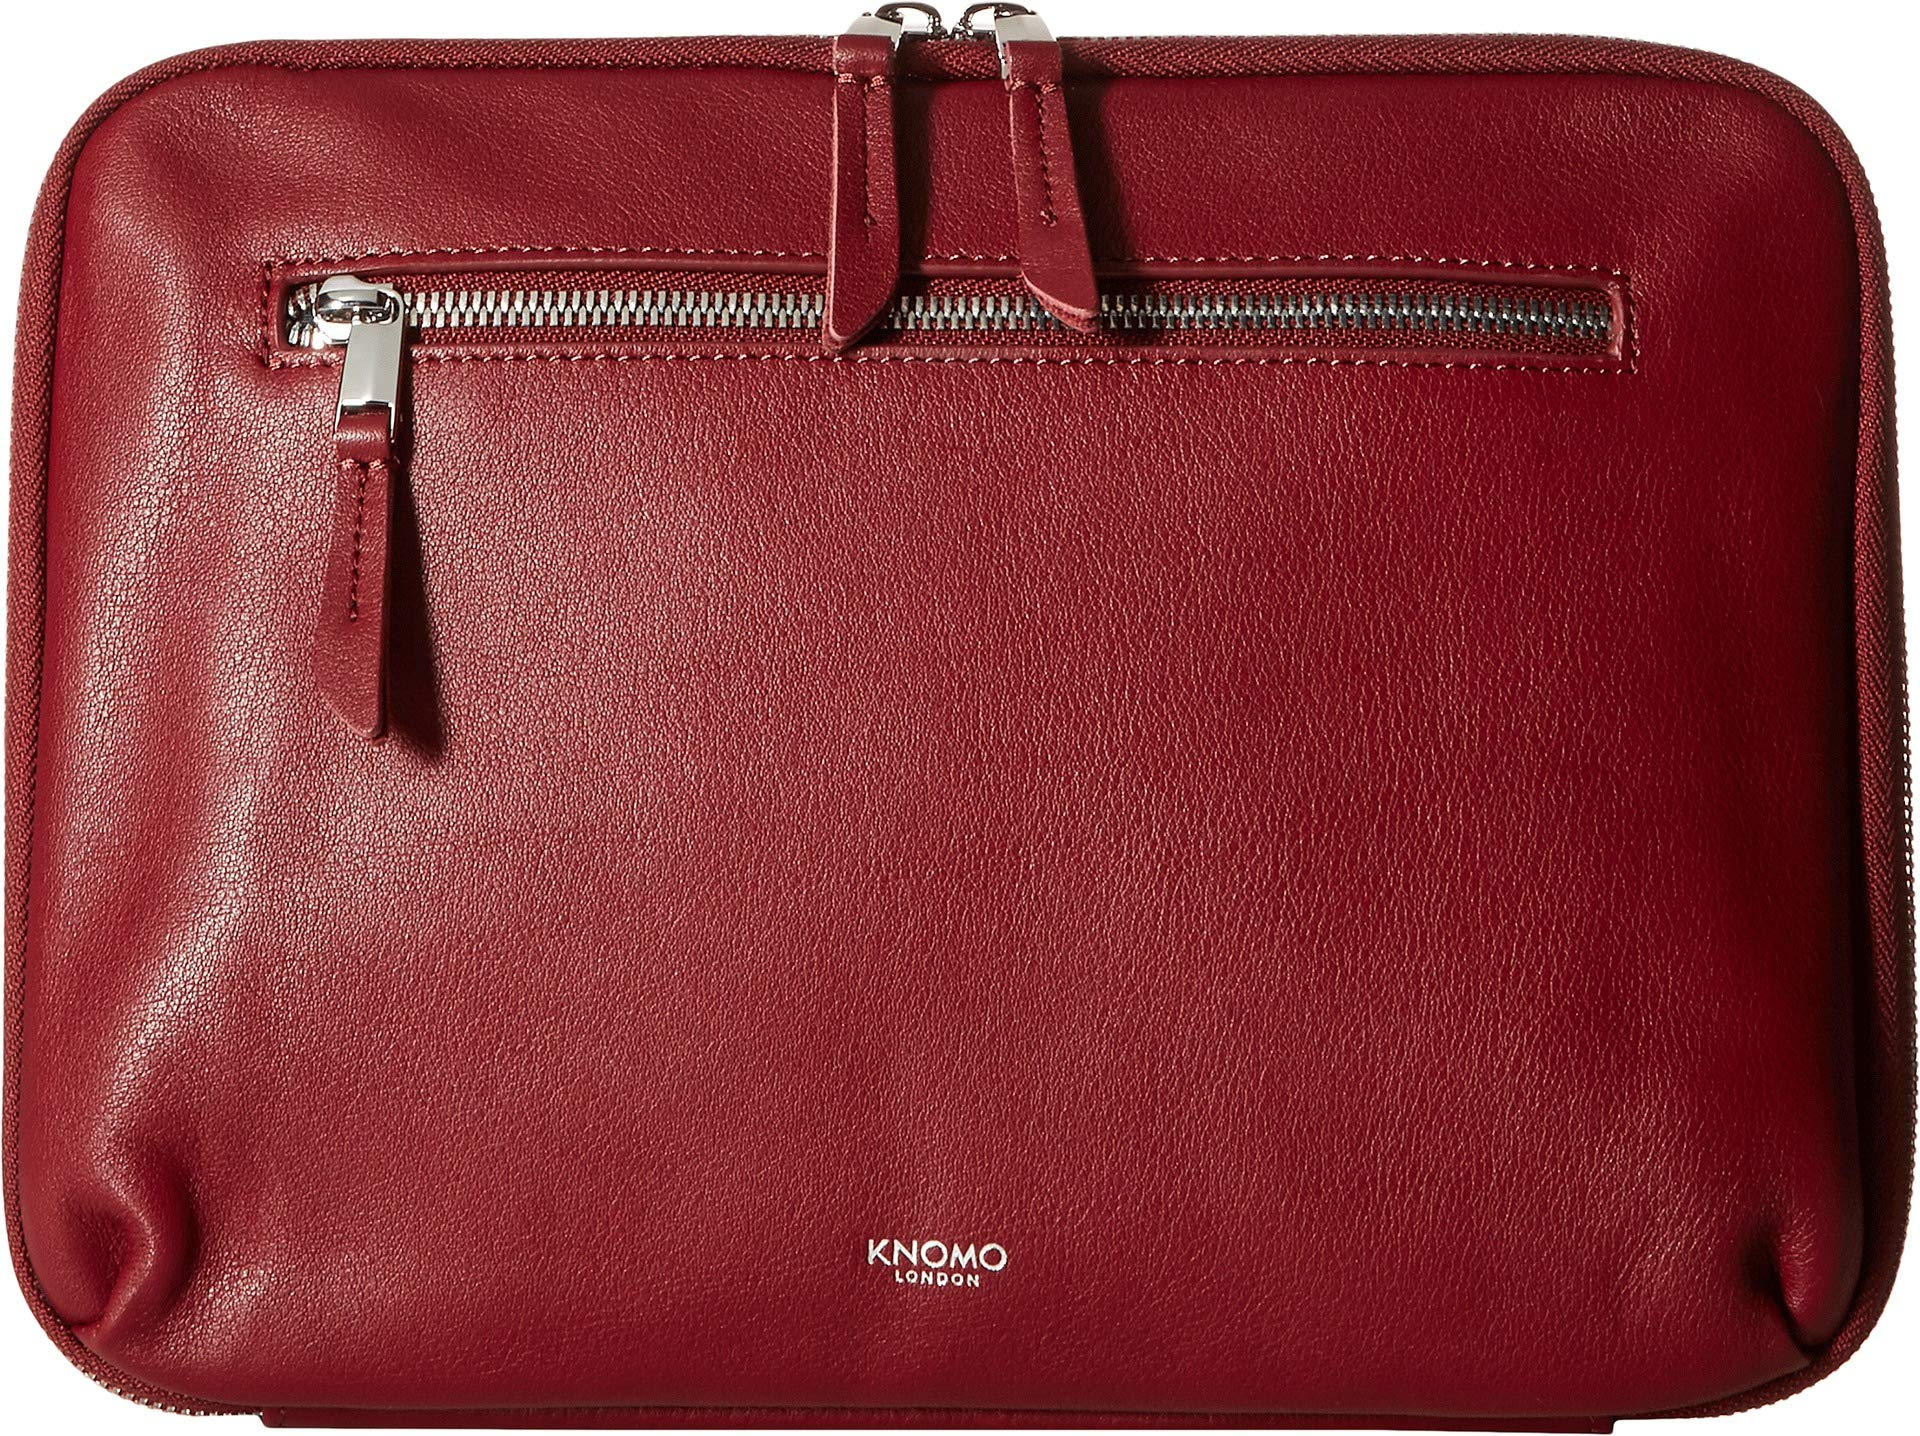 KNOMO London Women's Mayfair Luxe 10.5'' Tech Organiser Burgundy One Size